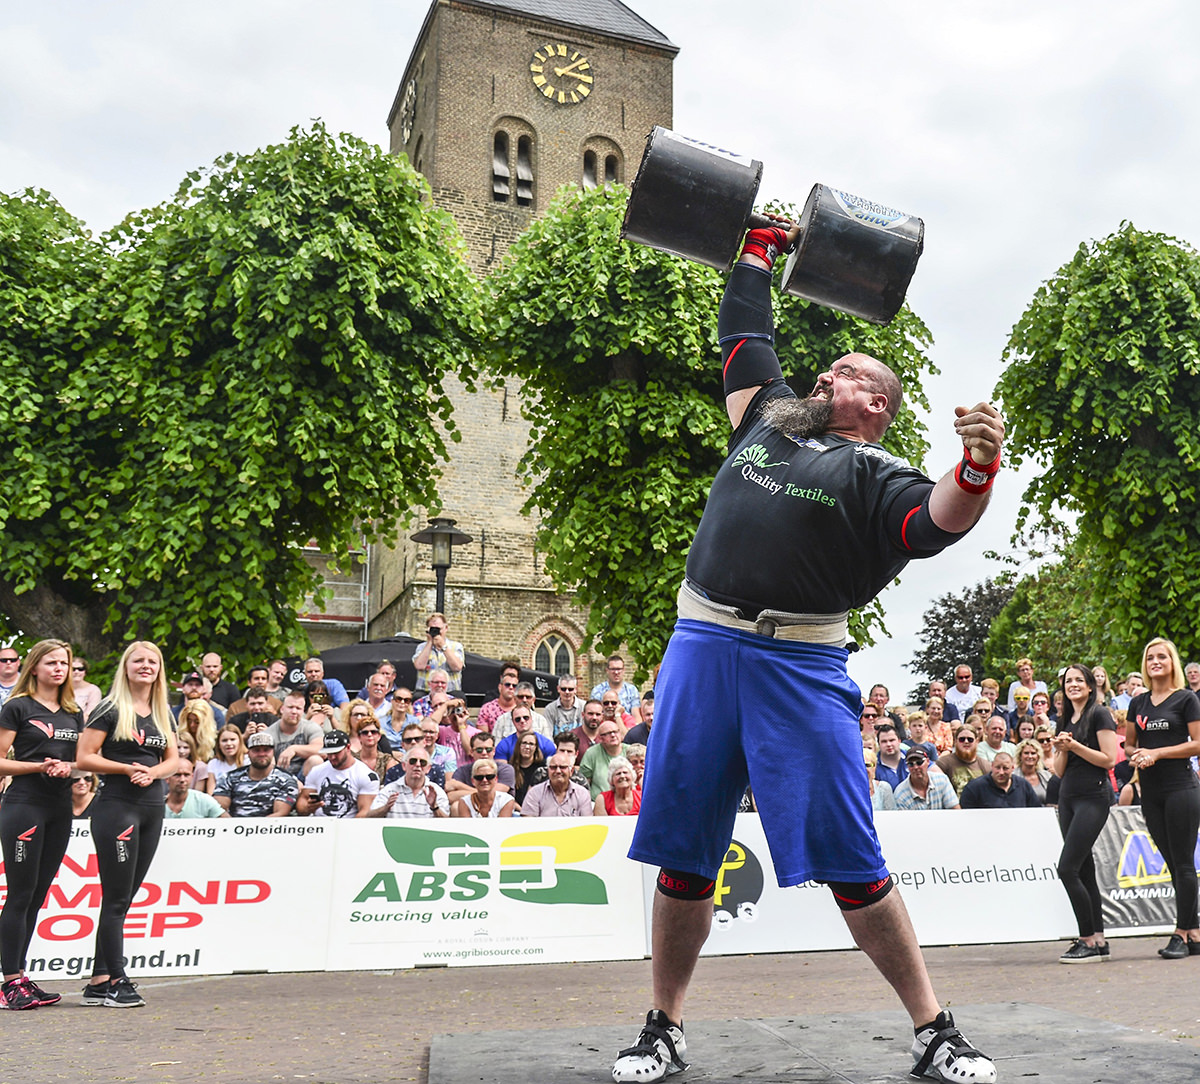 Eric Dawson To Defend His Title At The Scl Holland